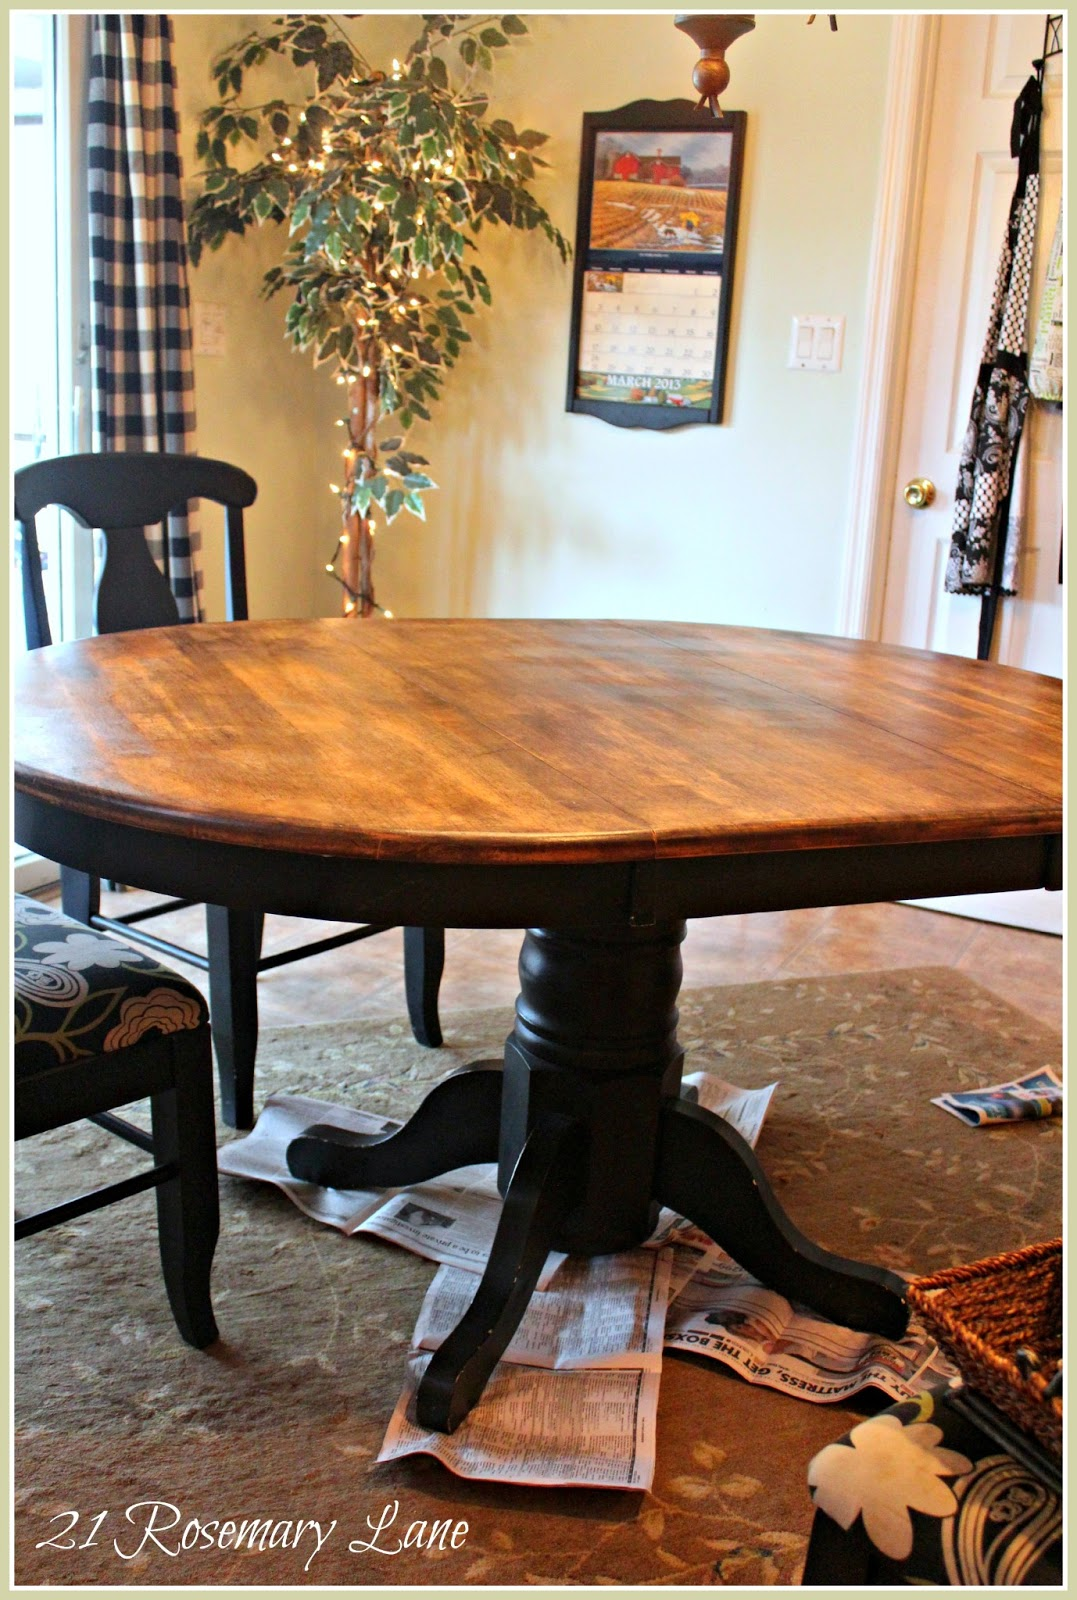 Chalk paint kitchen chairs - So With A Little Chalk Paint A Minwax Protective Coat And Some Remnent Fabric I Bought At A Local Fabric And Upholstery Store My Dinette Set Went From